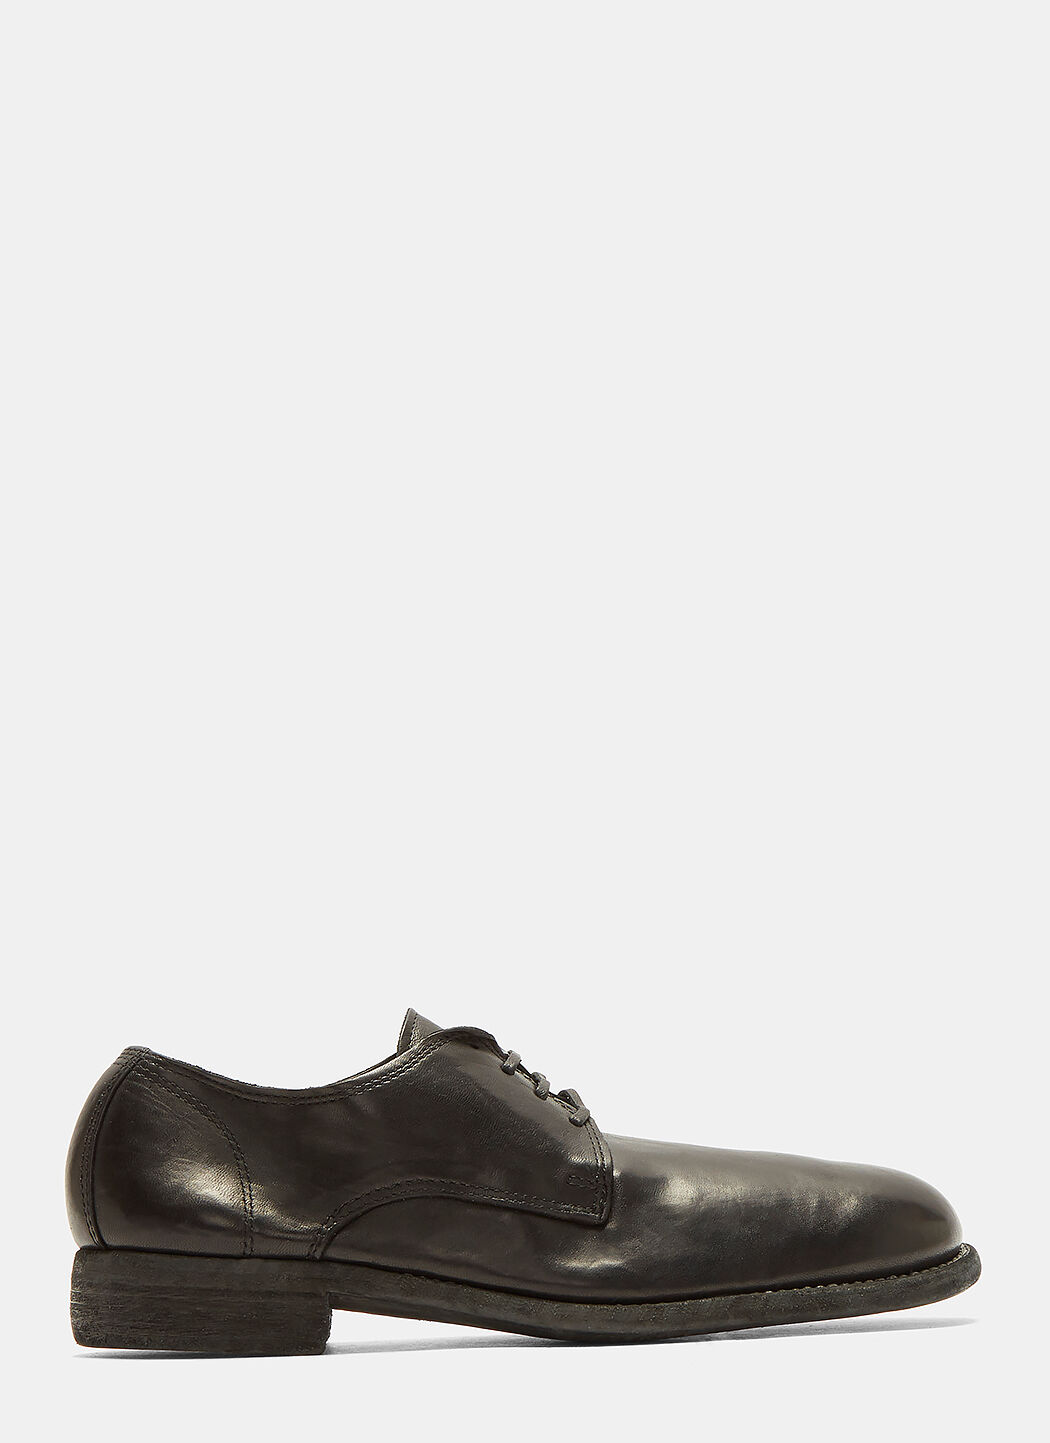 Raw Flax Zipped Derby Shoes Yohji Yamamoto From China Low Shipping Fee Cheap Price Factory Outlet Z9AAYN